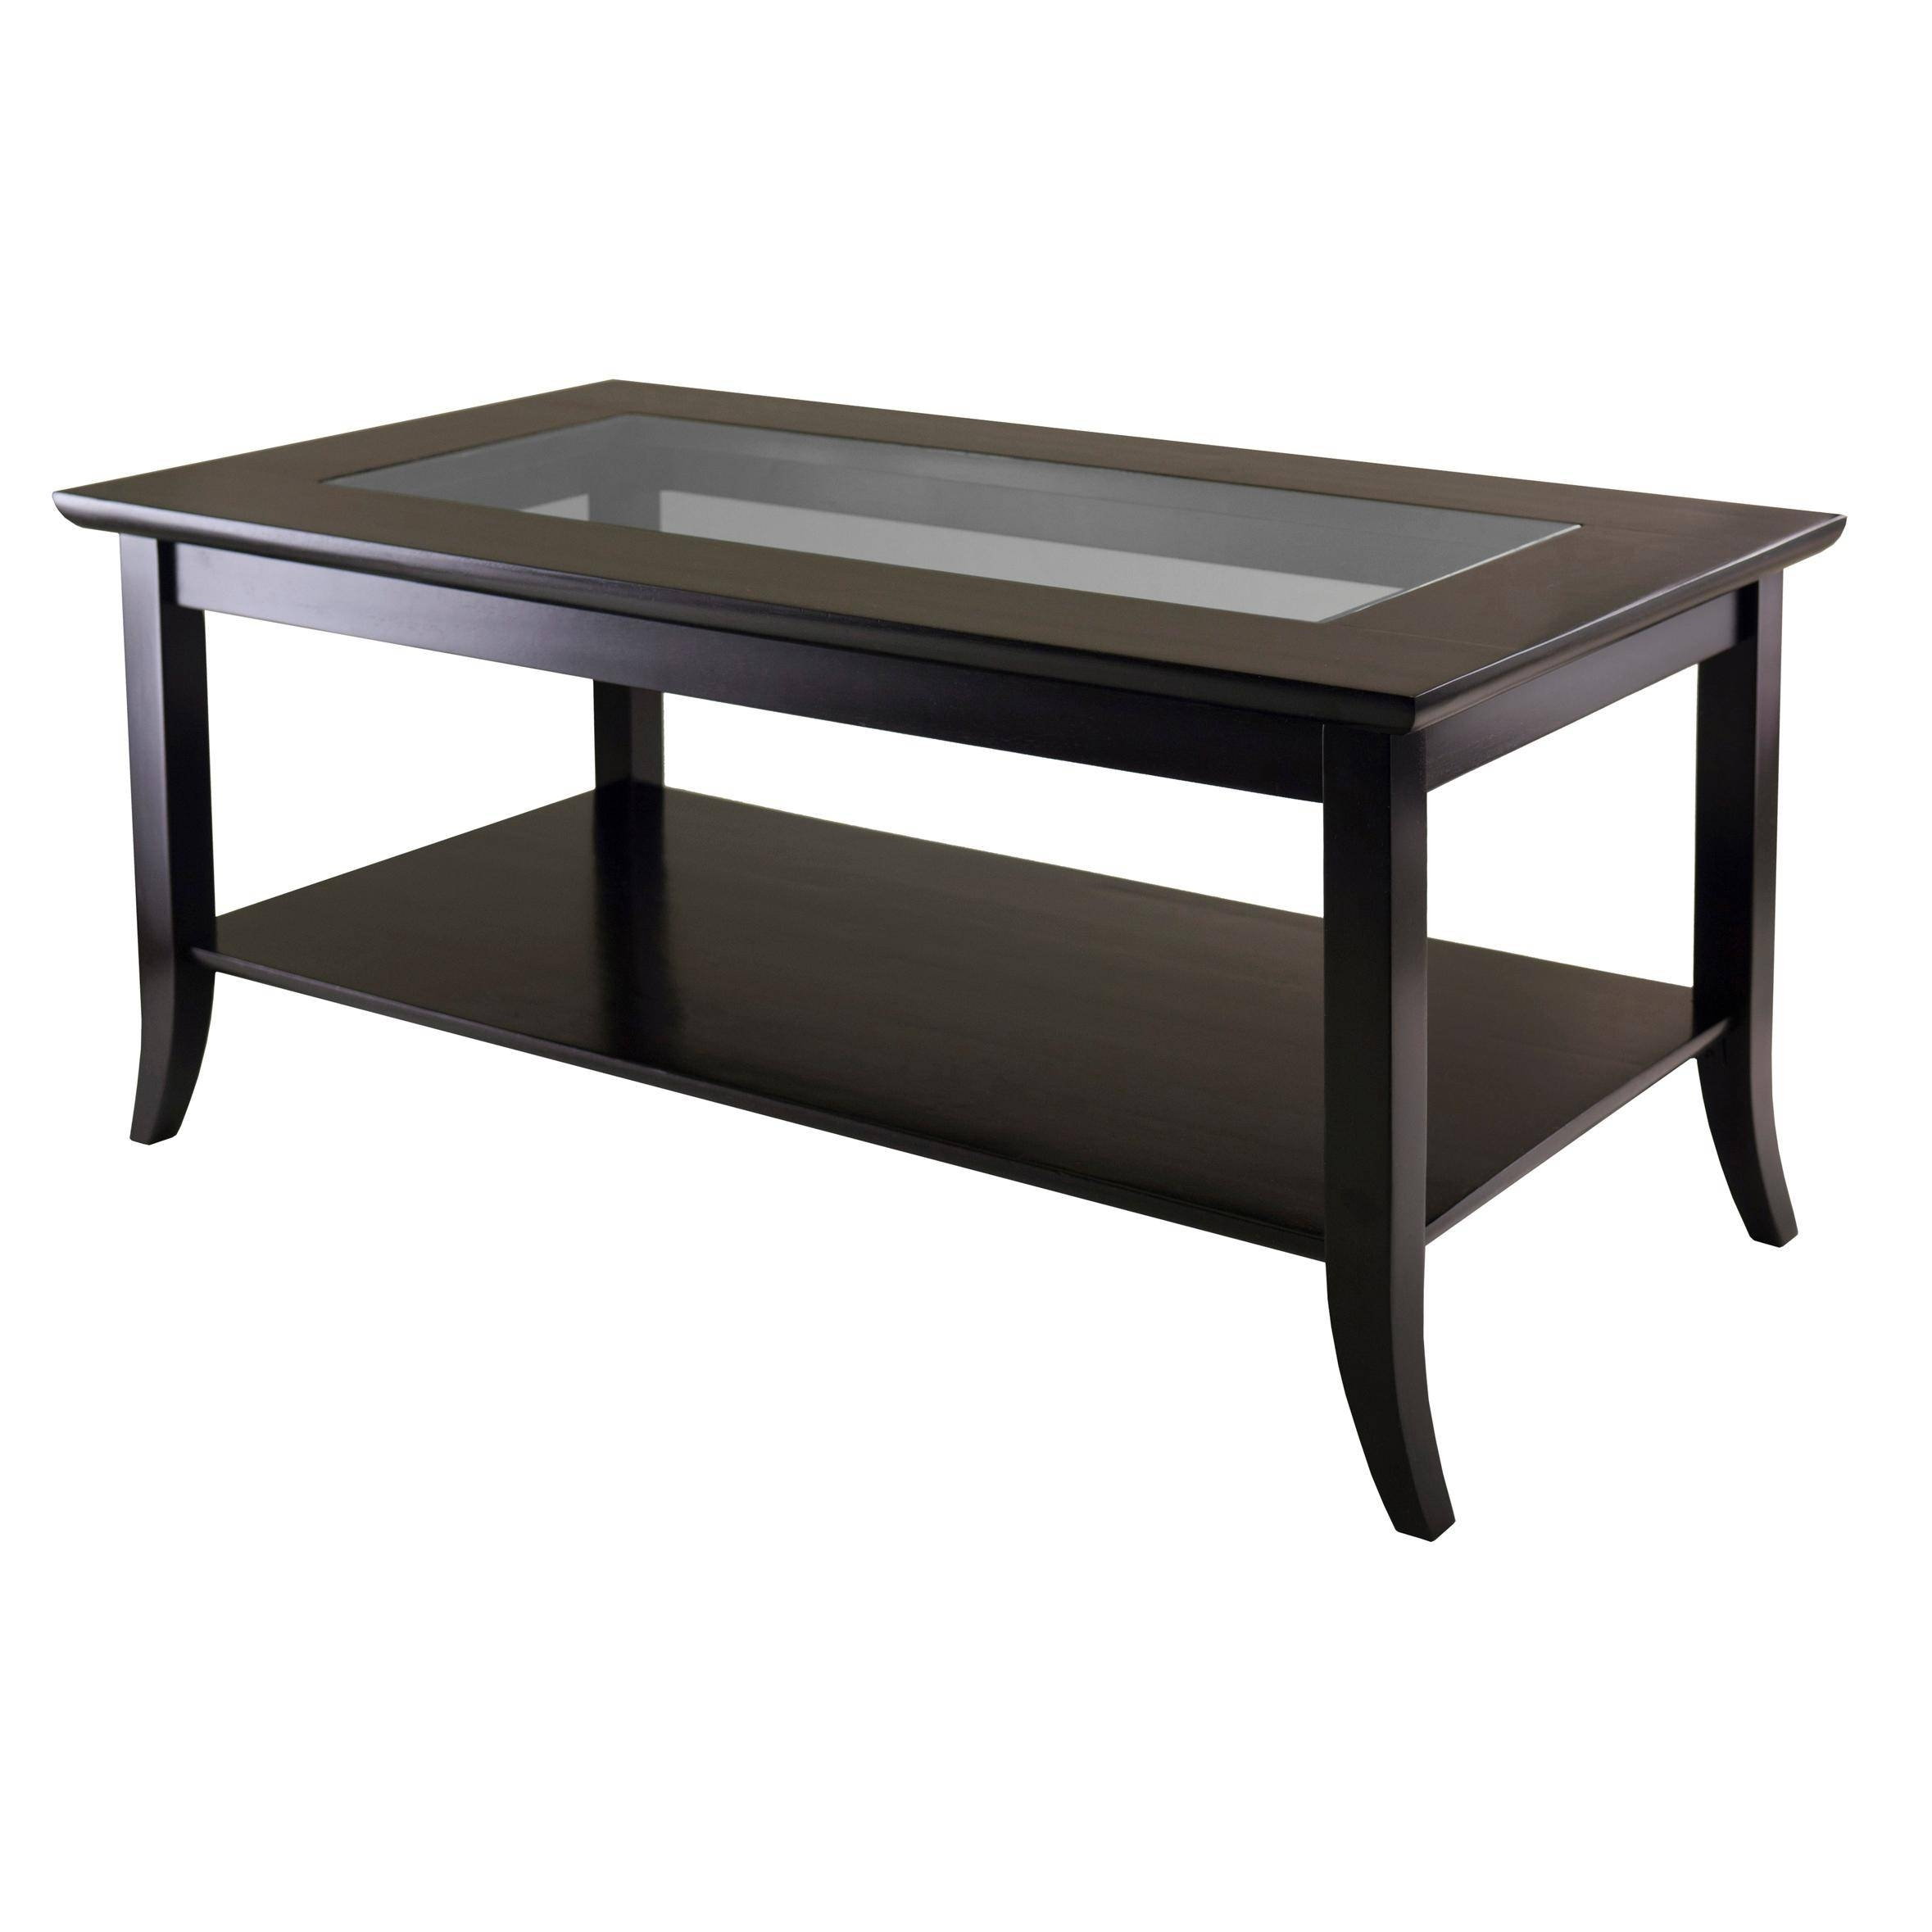 Coffee Table: Latest Coffee Table With Glass Top Design Ideas in Dark Wood Coffee Tables With Glass Top (Image 5 of 30)